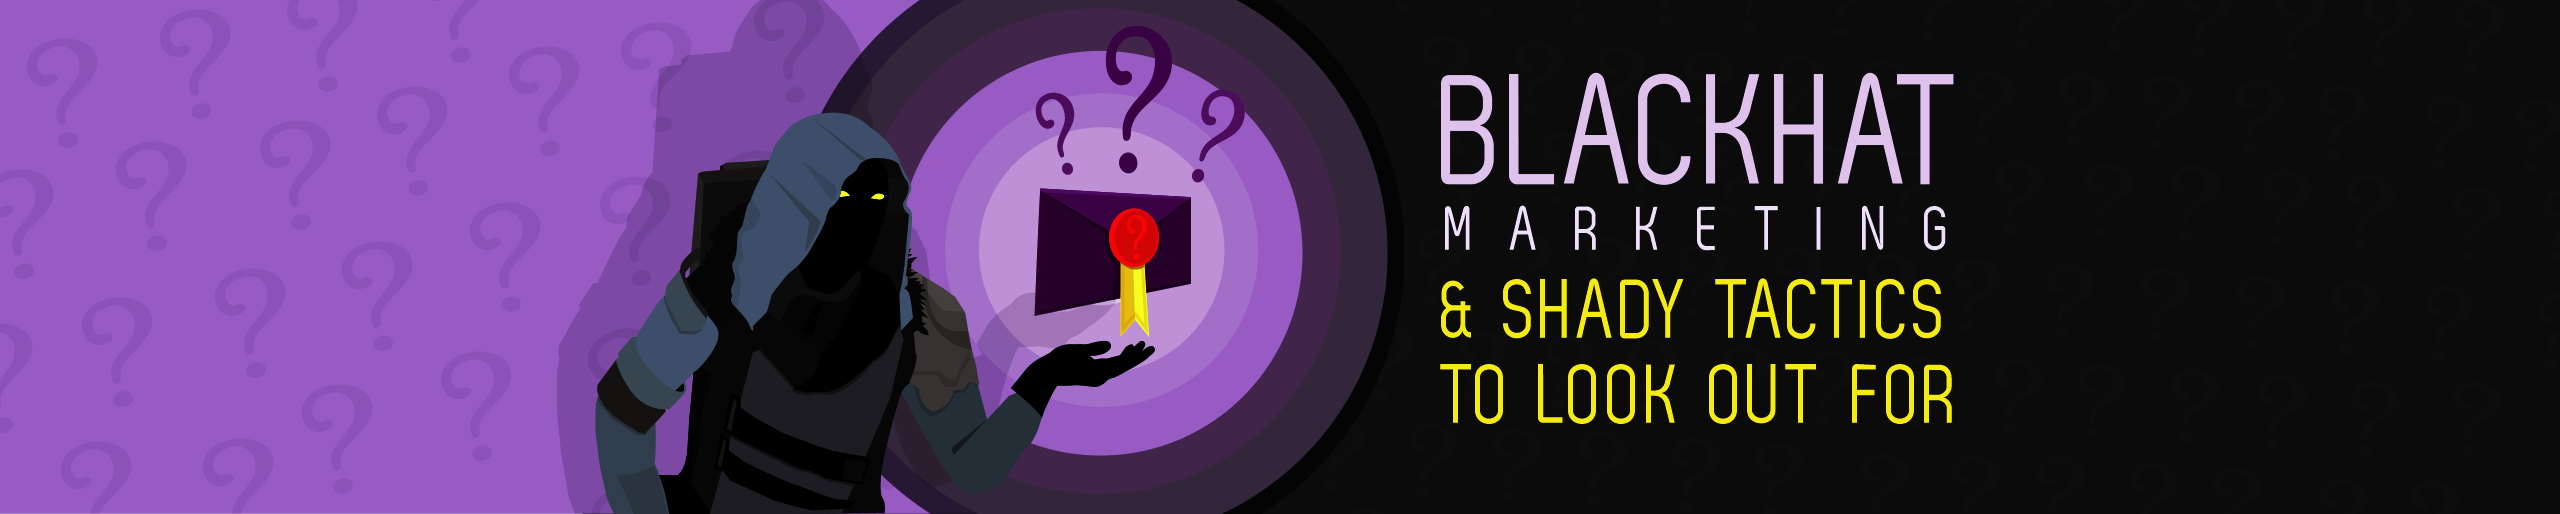 blackhat marketing and shady tactics